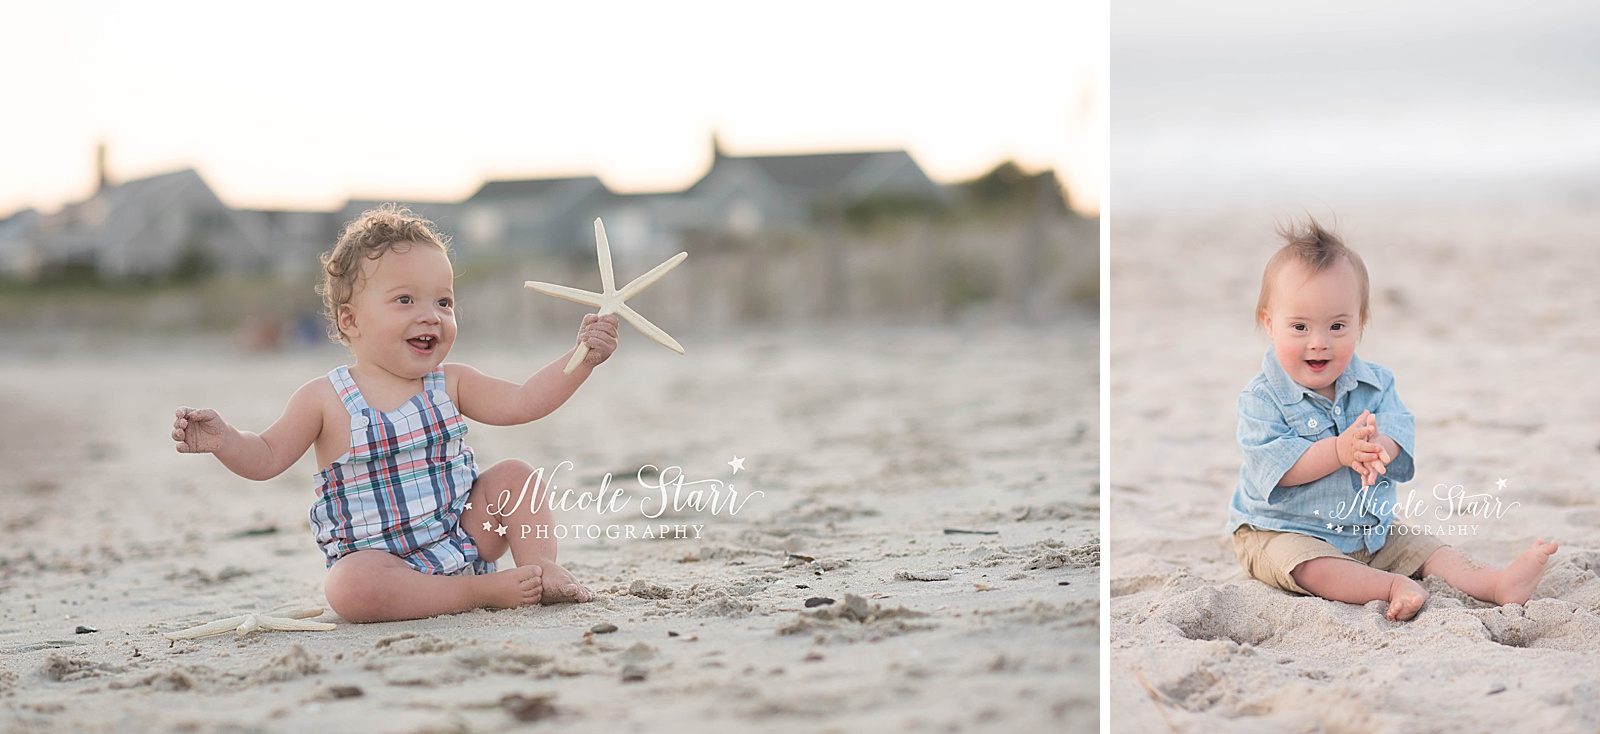 Nicole Starr Photography   Cape Cod Family Photographer   Boston Family Photographer   Family Photographer   Beach Family Photographer   Massachusetts Family Photographer, client wardrobe, what to wear for milestone session, milestone photography, outfits for babies, client outfits, photoshoot outfits, beach family portraits, beach family portrait outfit inspiration